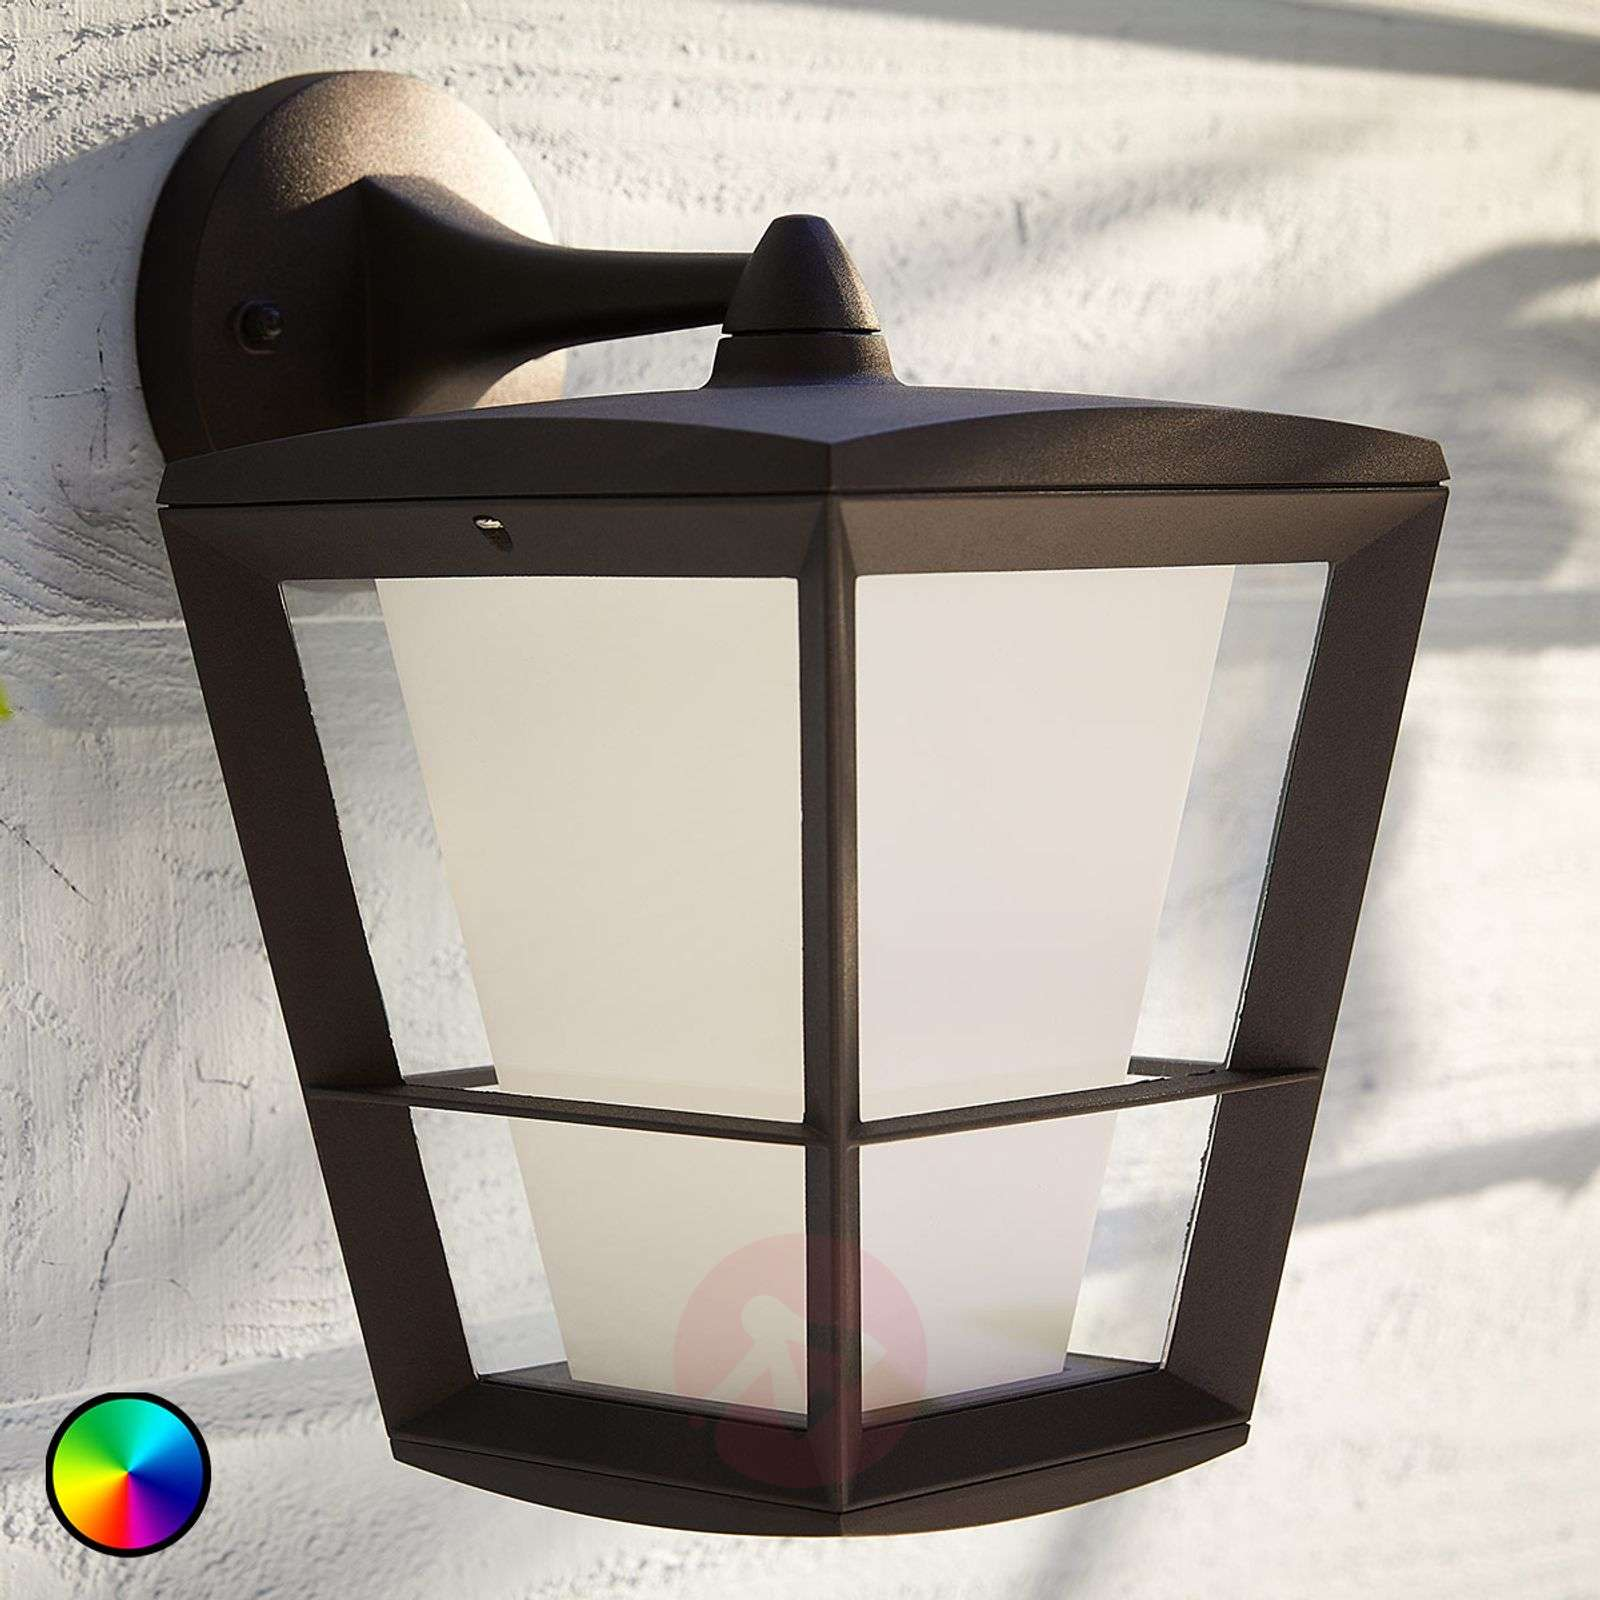 Philips Hue White+Color Econic wall light, under-7534118-02